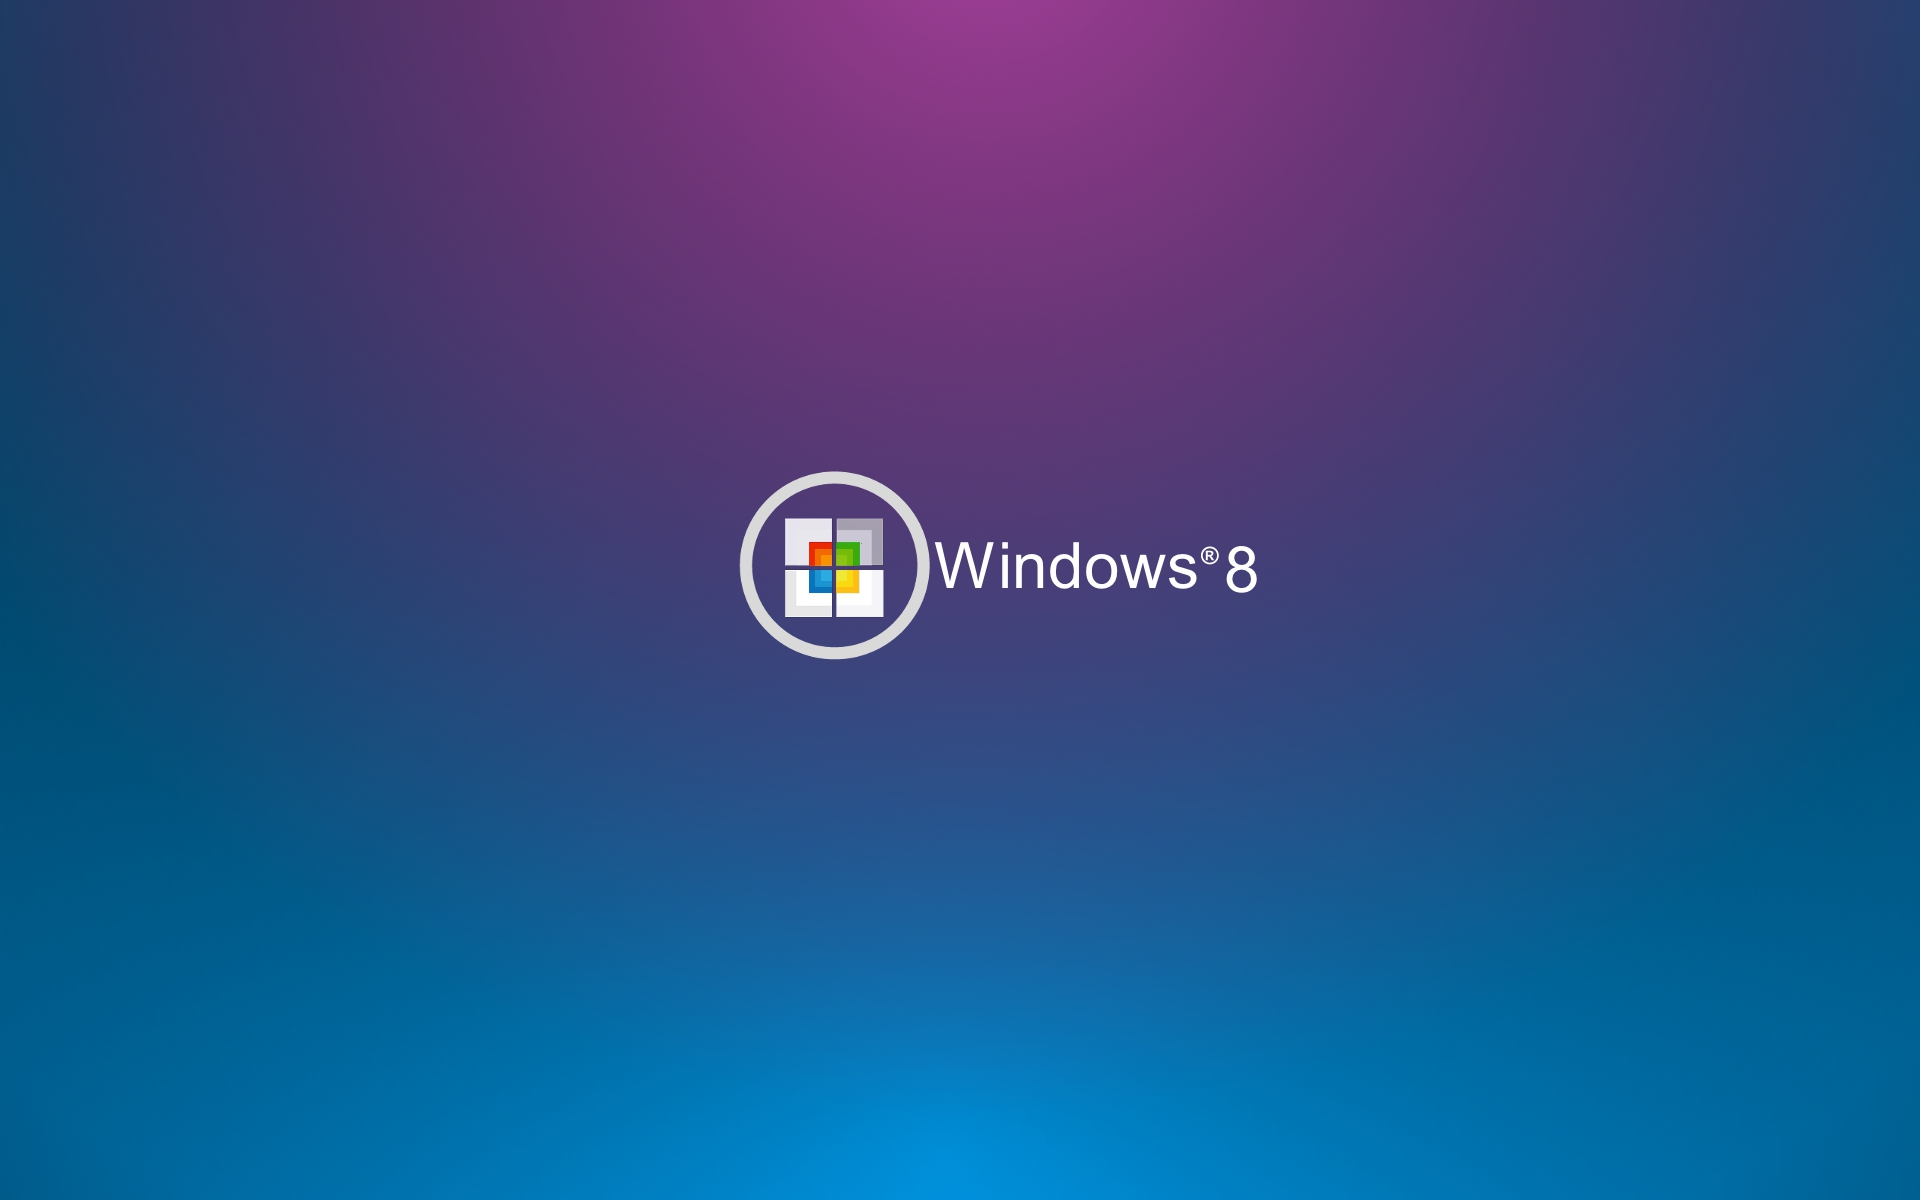 Genuine MS windows8 wallpaper by rgontwerp